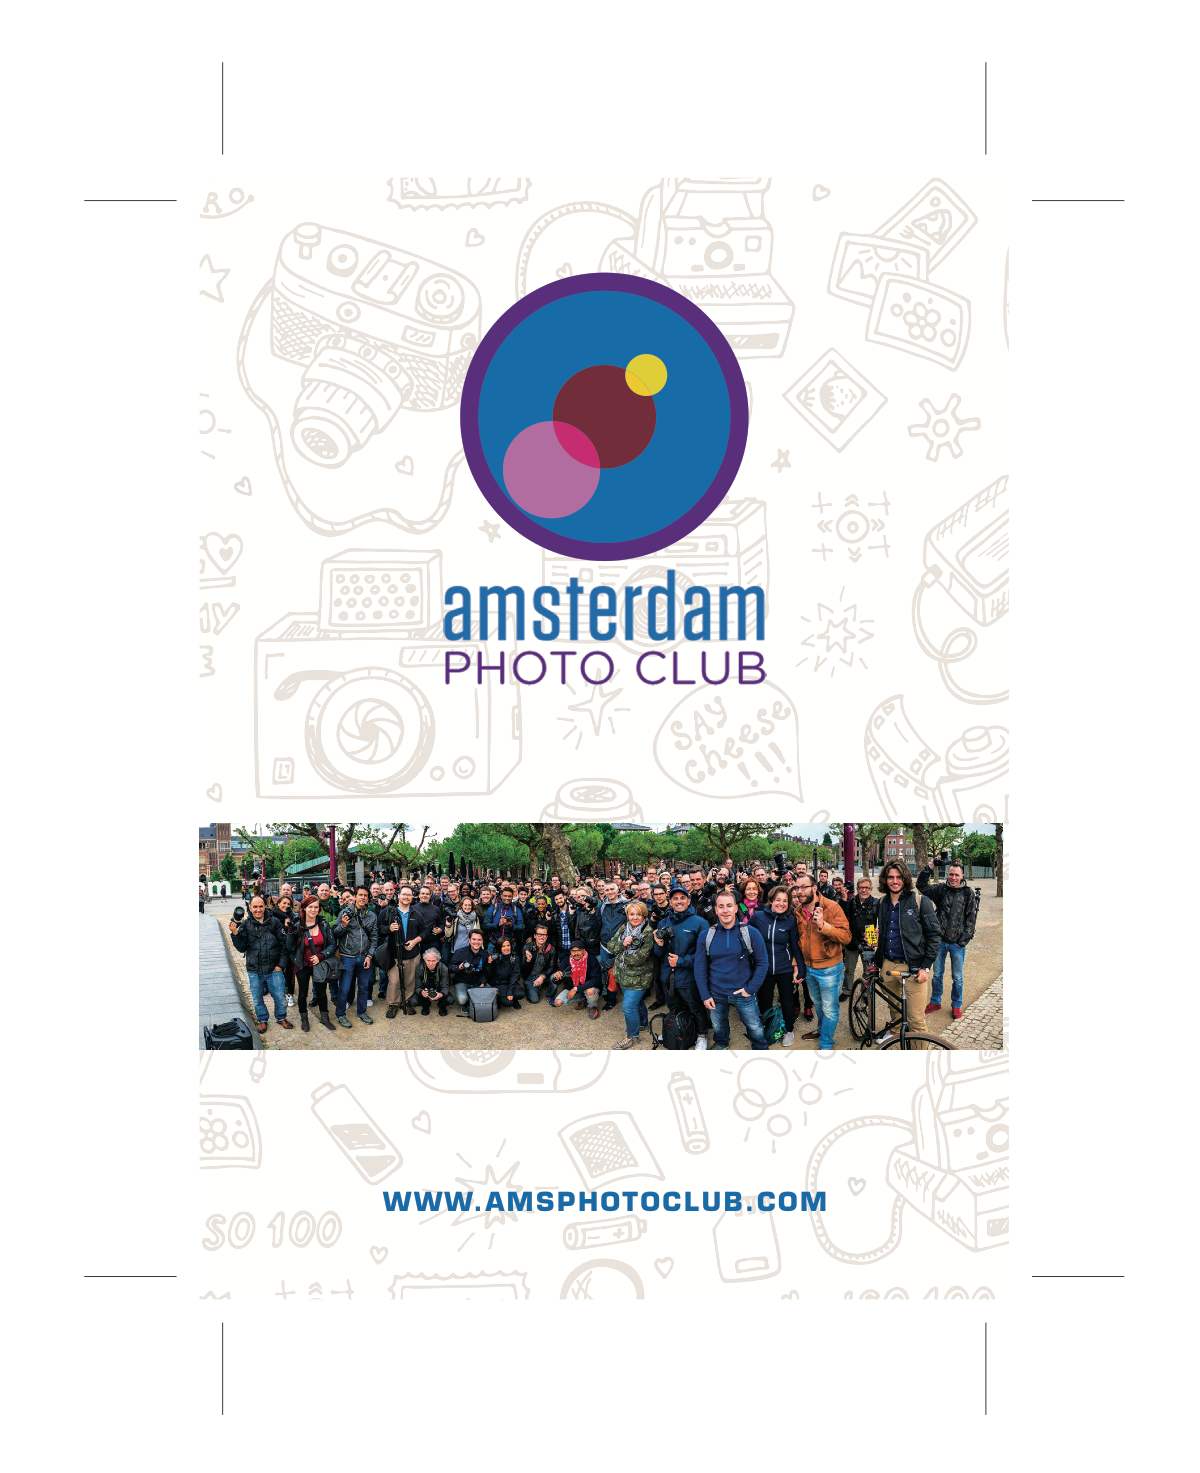 A6 flyer for Amsterdam Photo Club